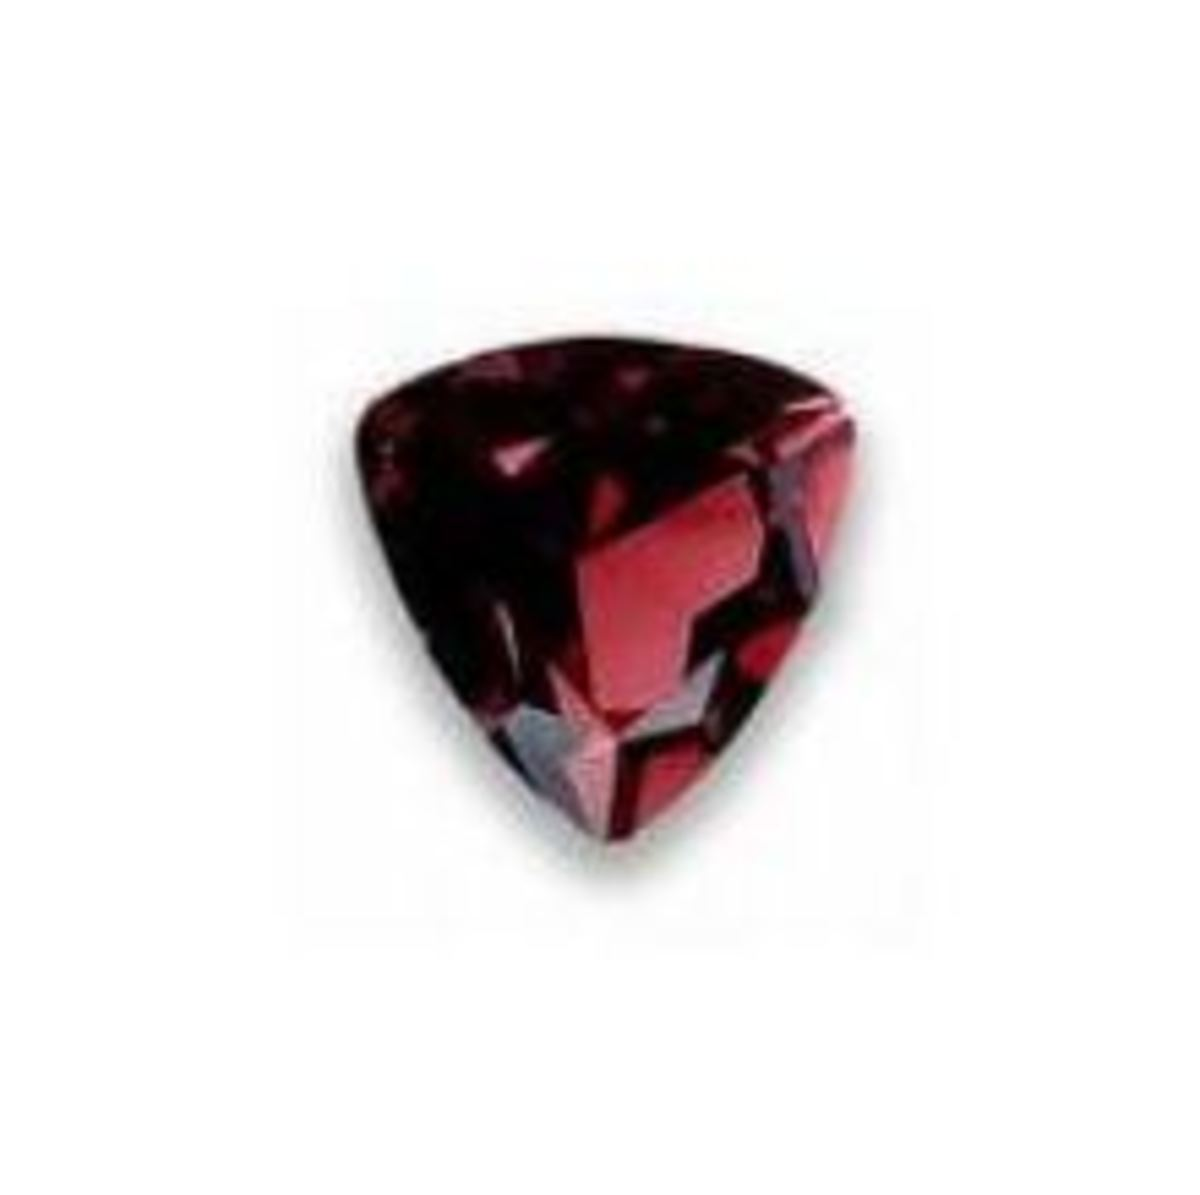 Garnet Gemstone - Stone for Career Success and Love | hubpages